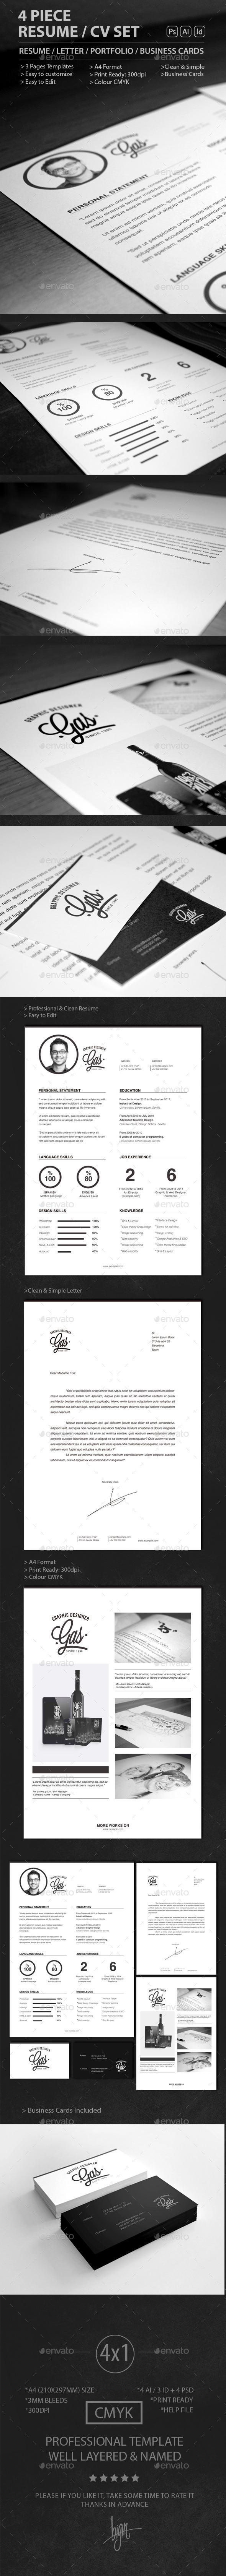 4 Piece Resume / CV SET - Resumes Stationery